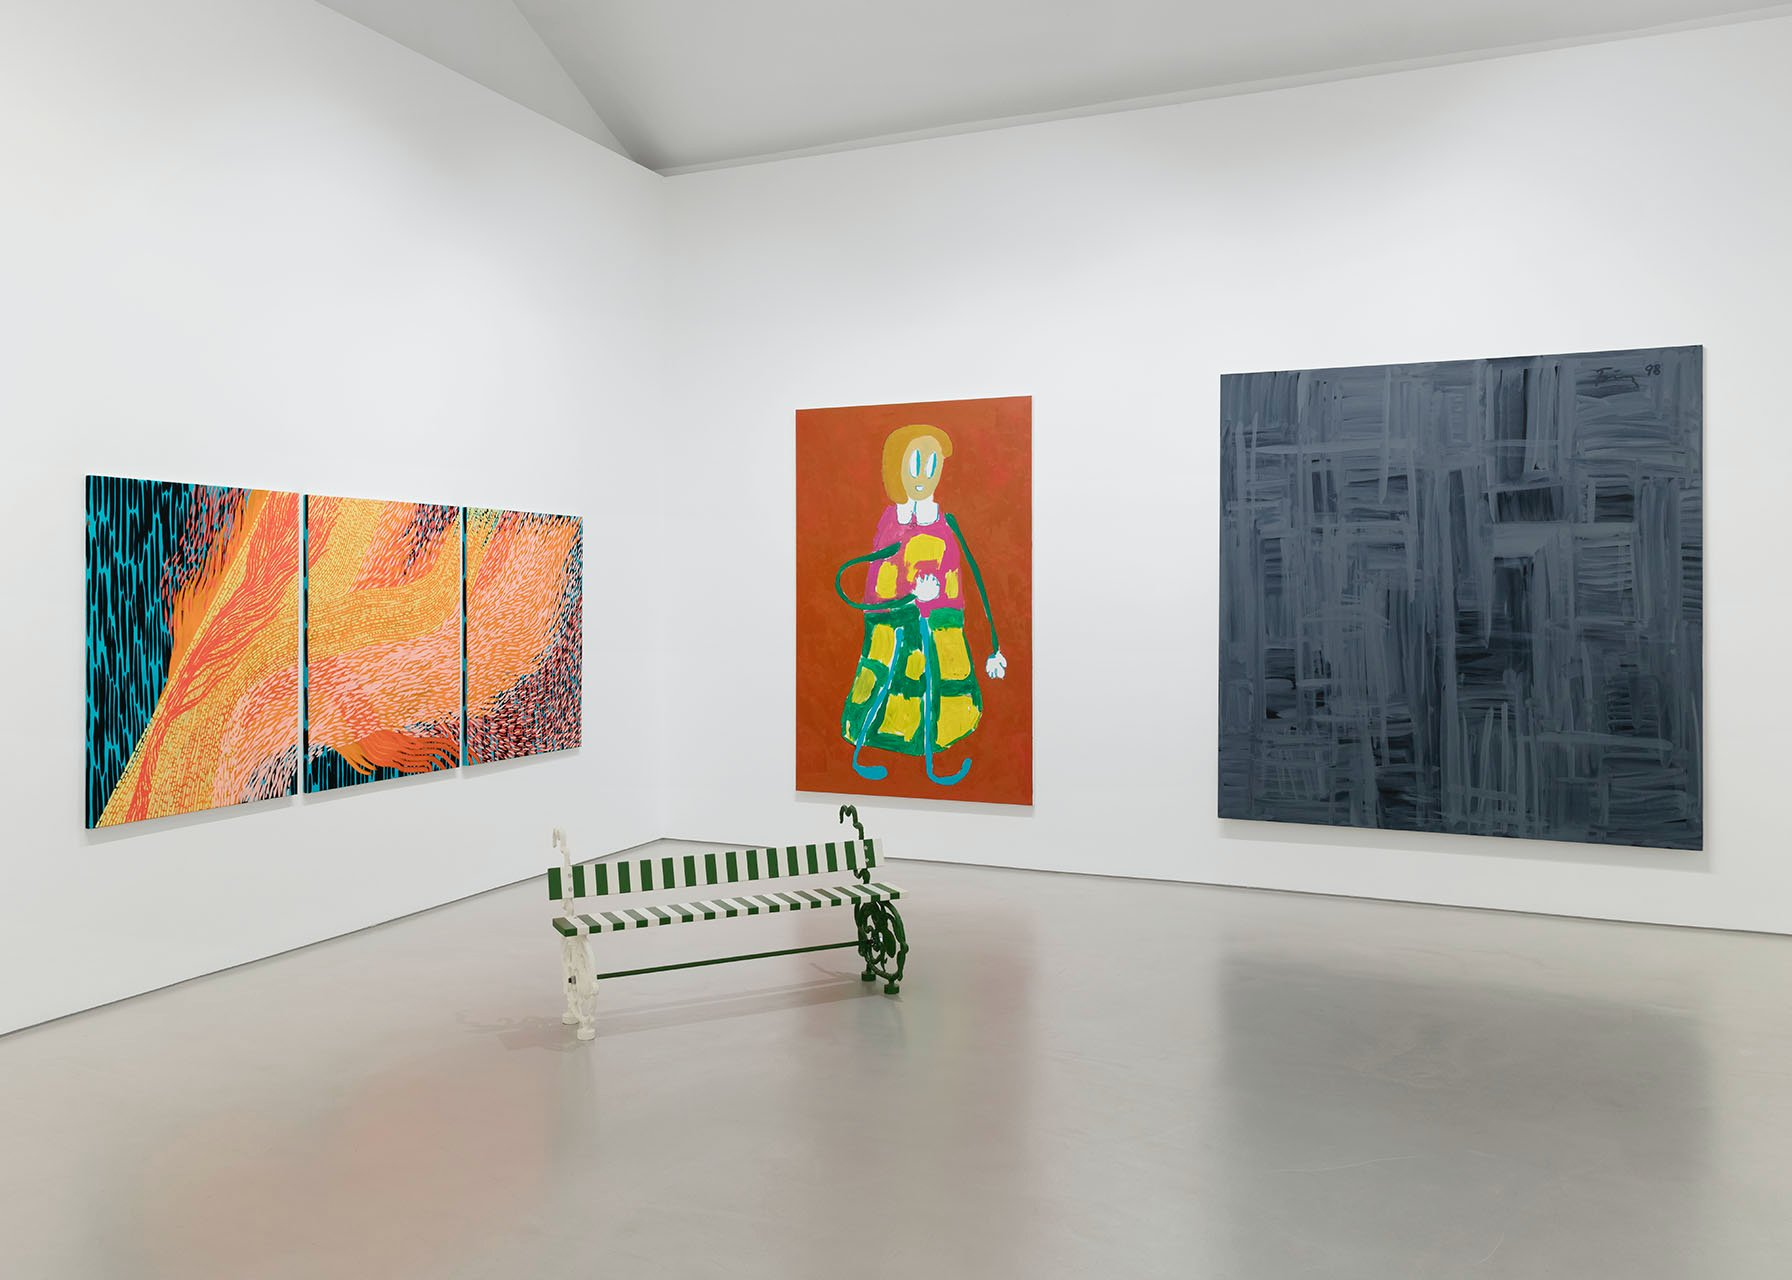 Galerie Max Hetzler FIAC at the gallery 1